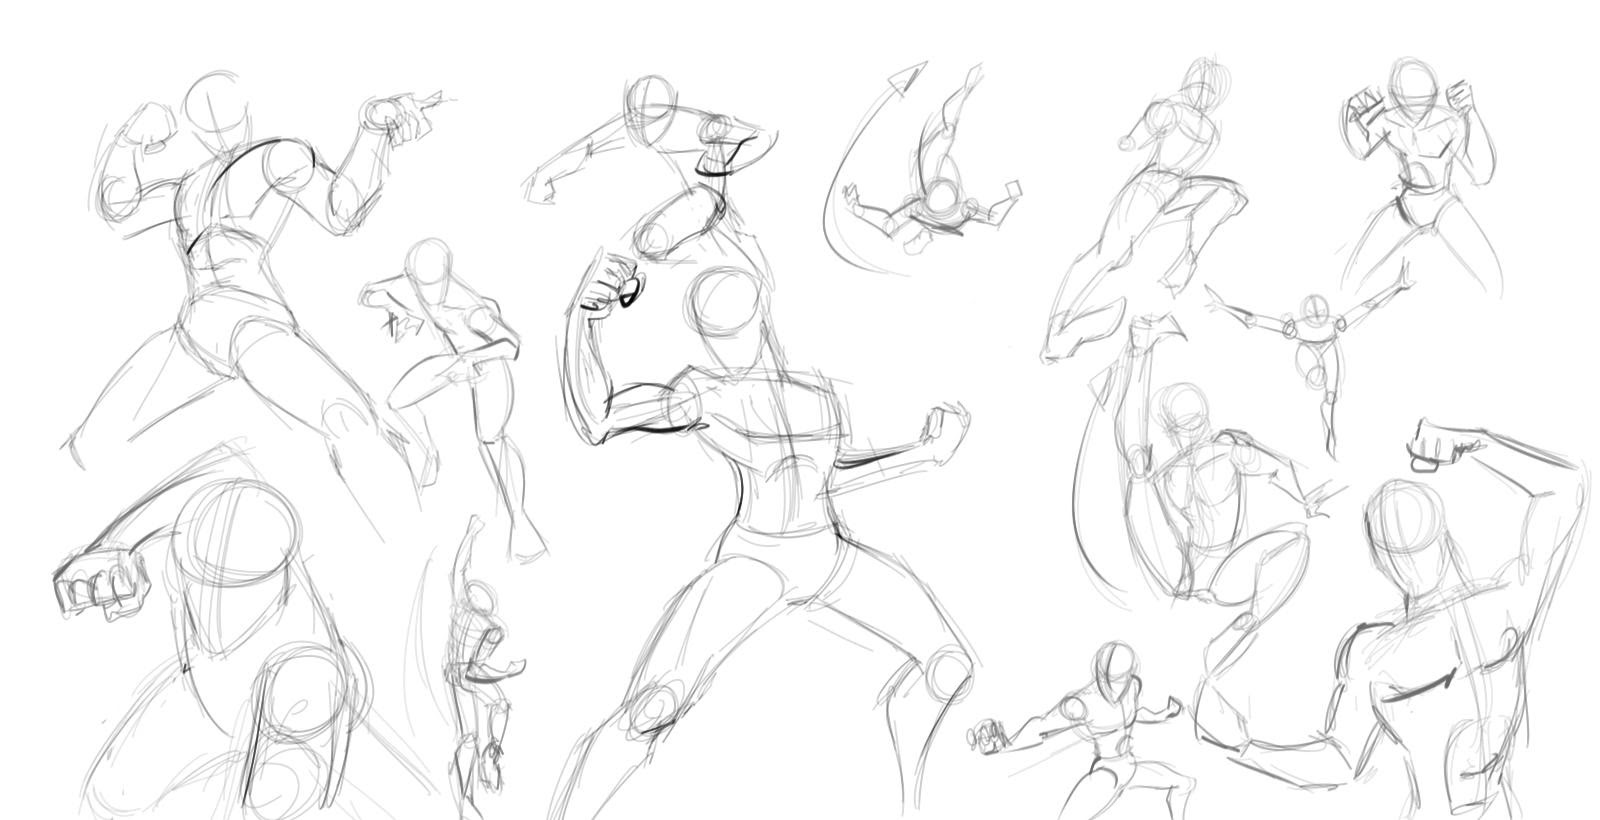 1600x820 Practicing More Action Figure Sketches In Box Forms Of Men